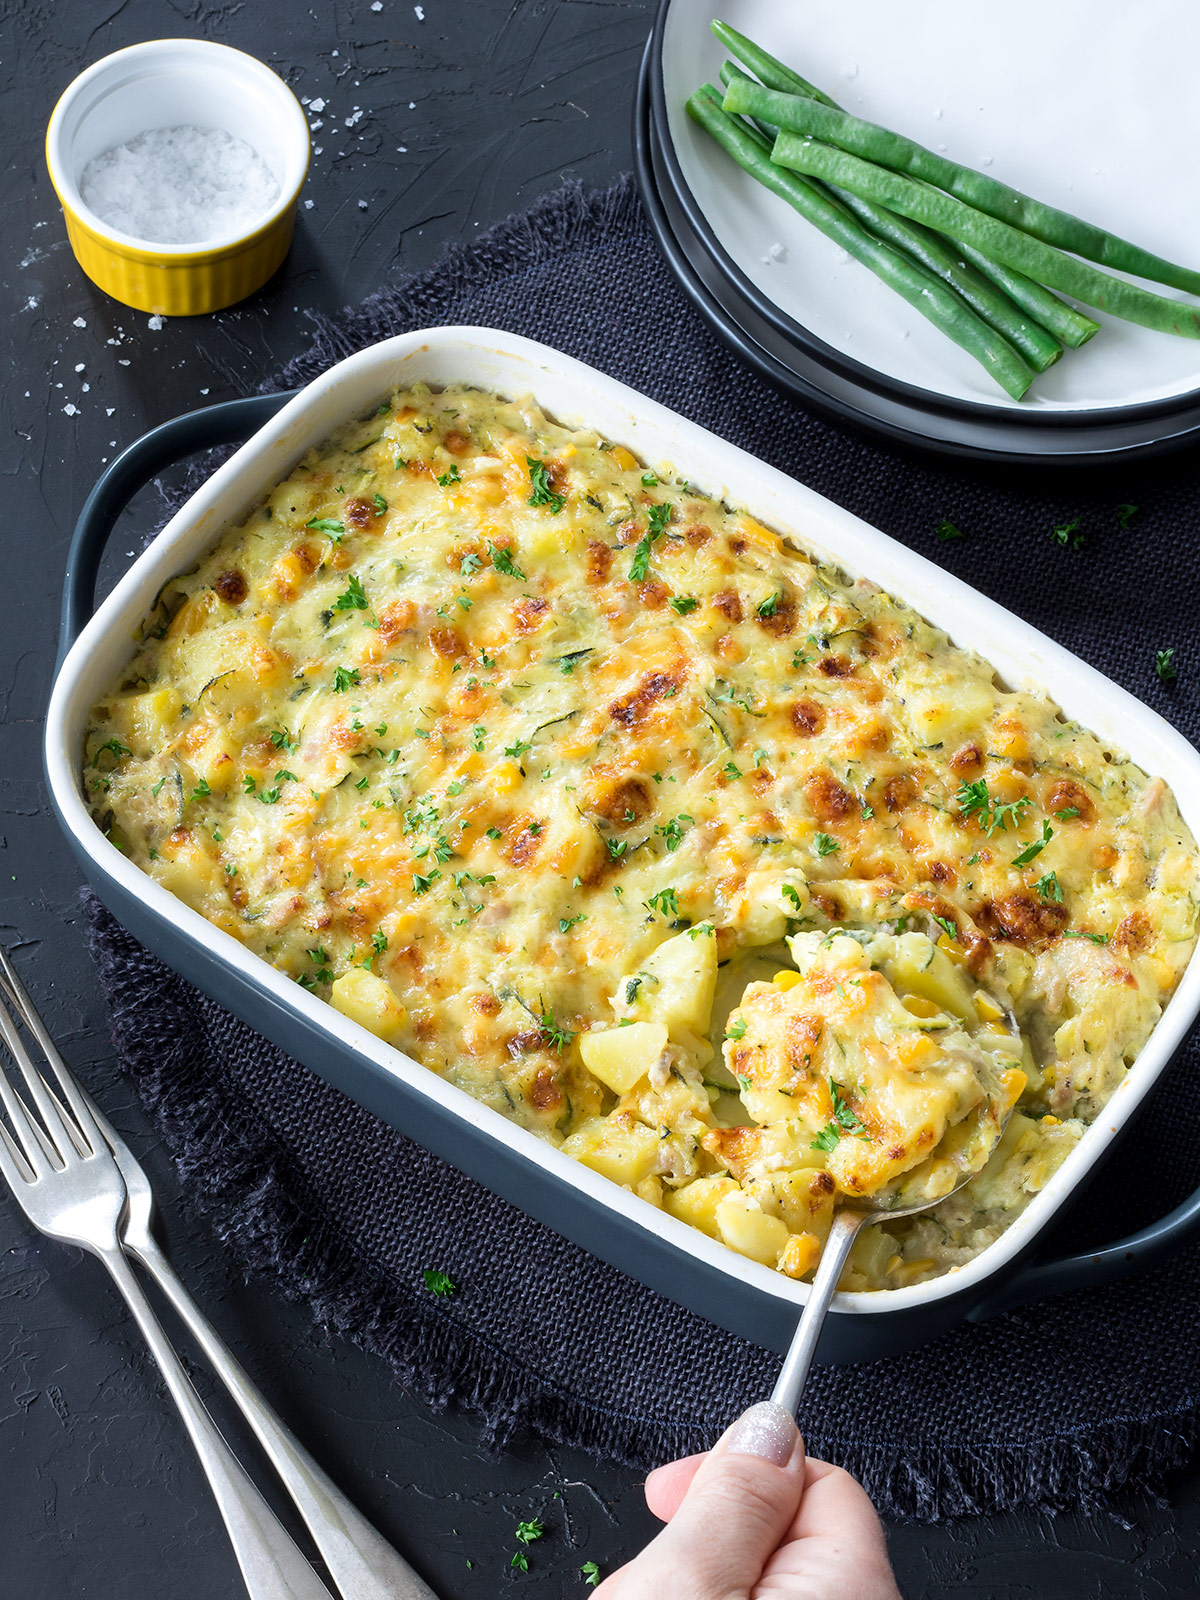 This easy tuna potato bake comes together a lot quicker than regular potato bakes. No need to cook in the oven for ages!